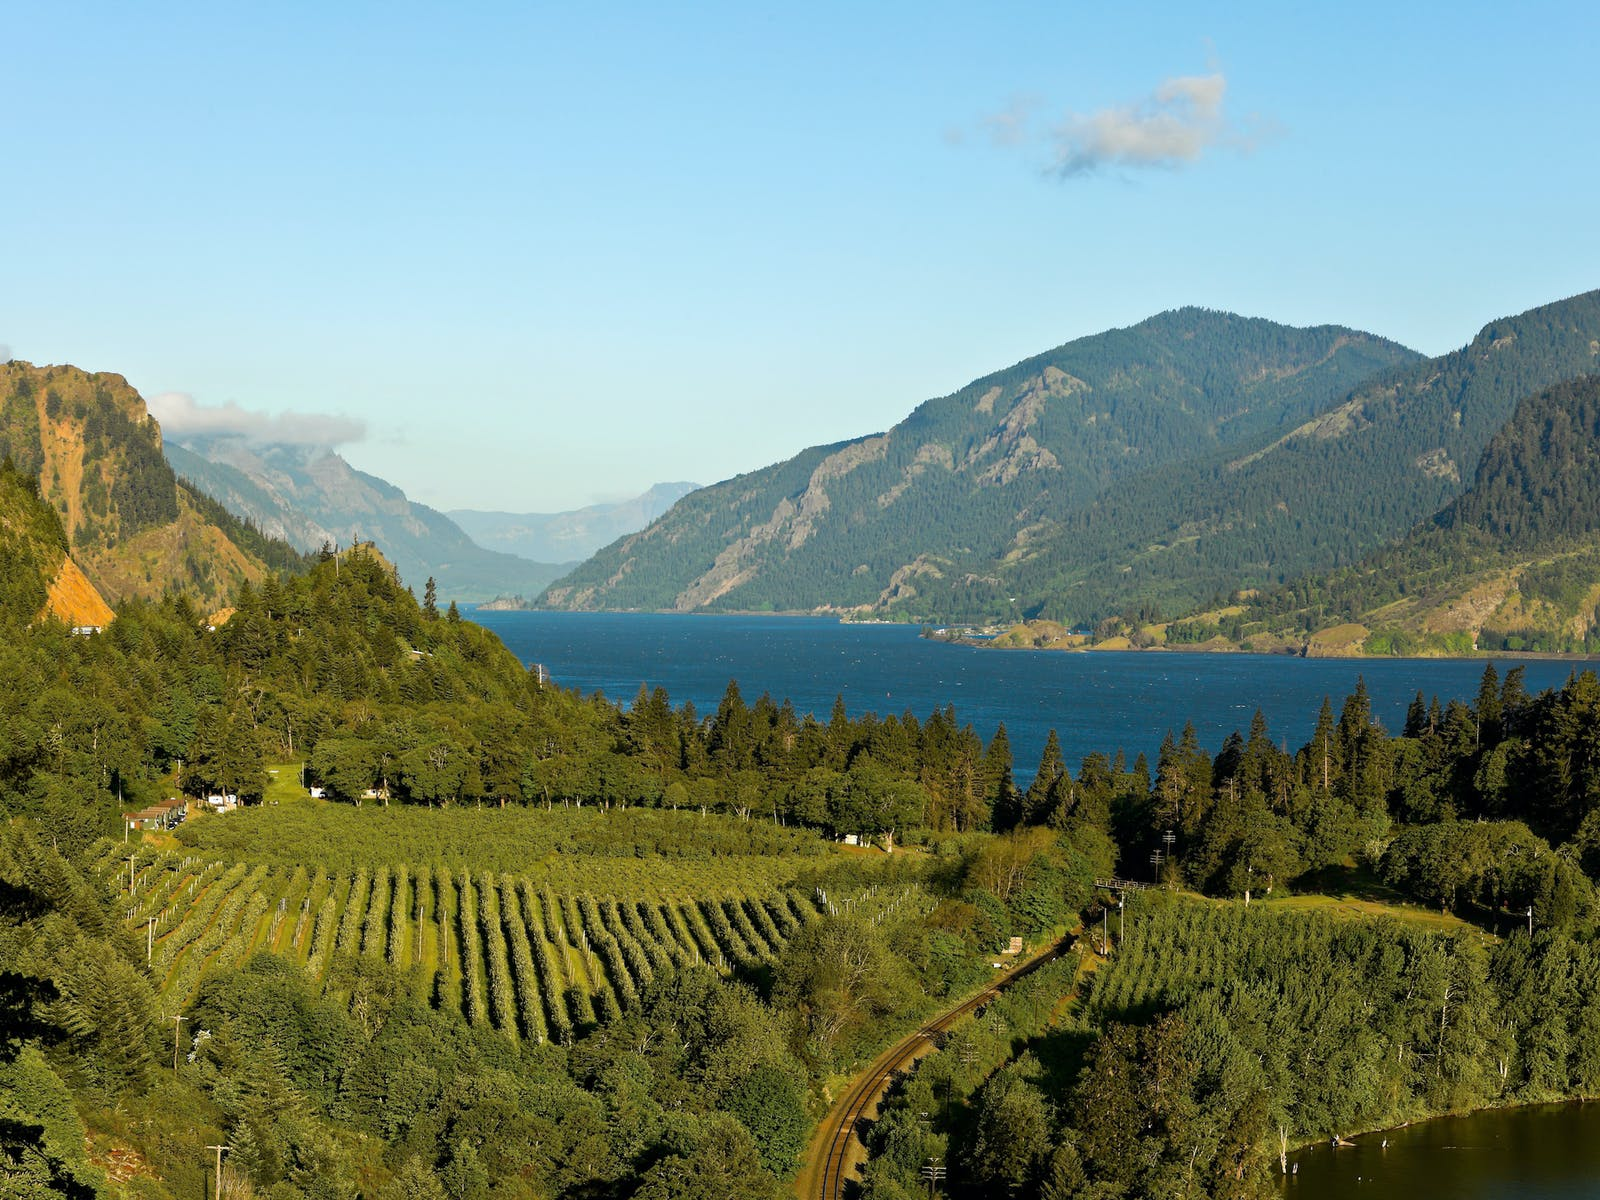 view of vineyards in columbia river gorge